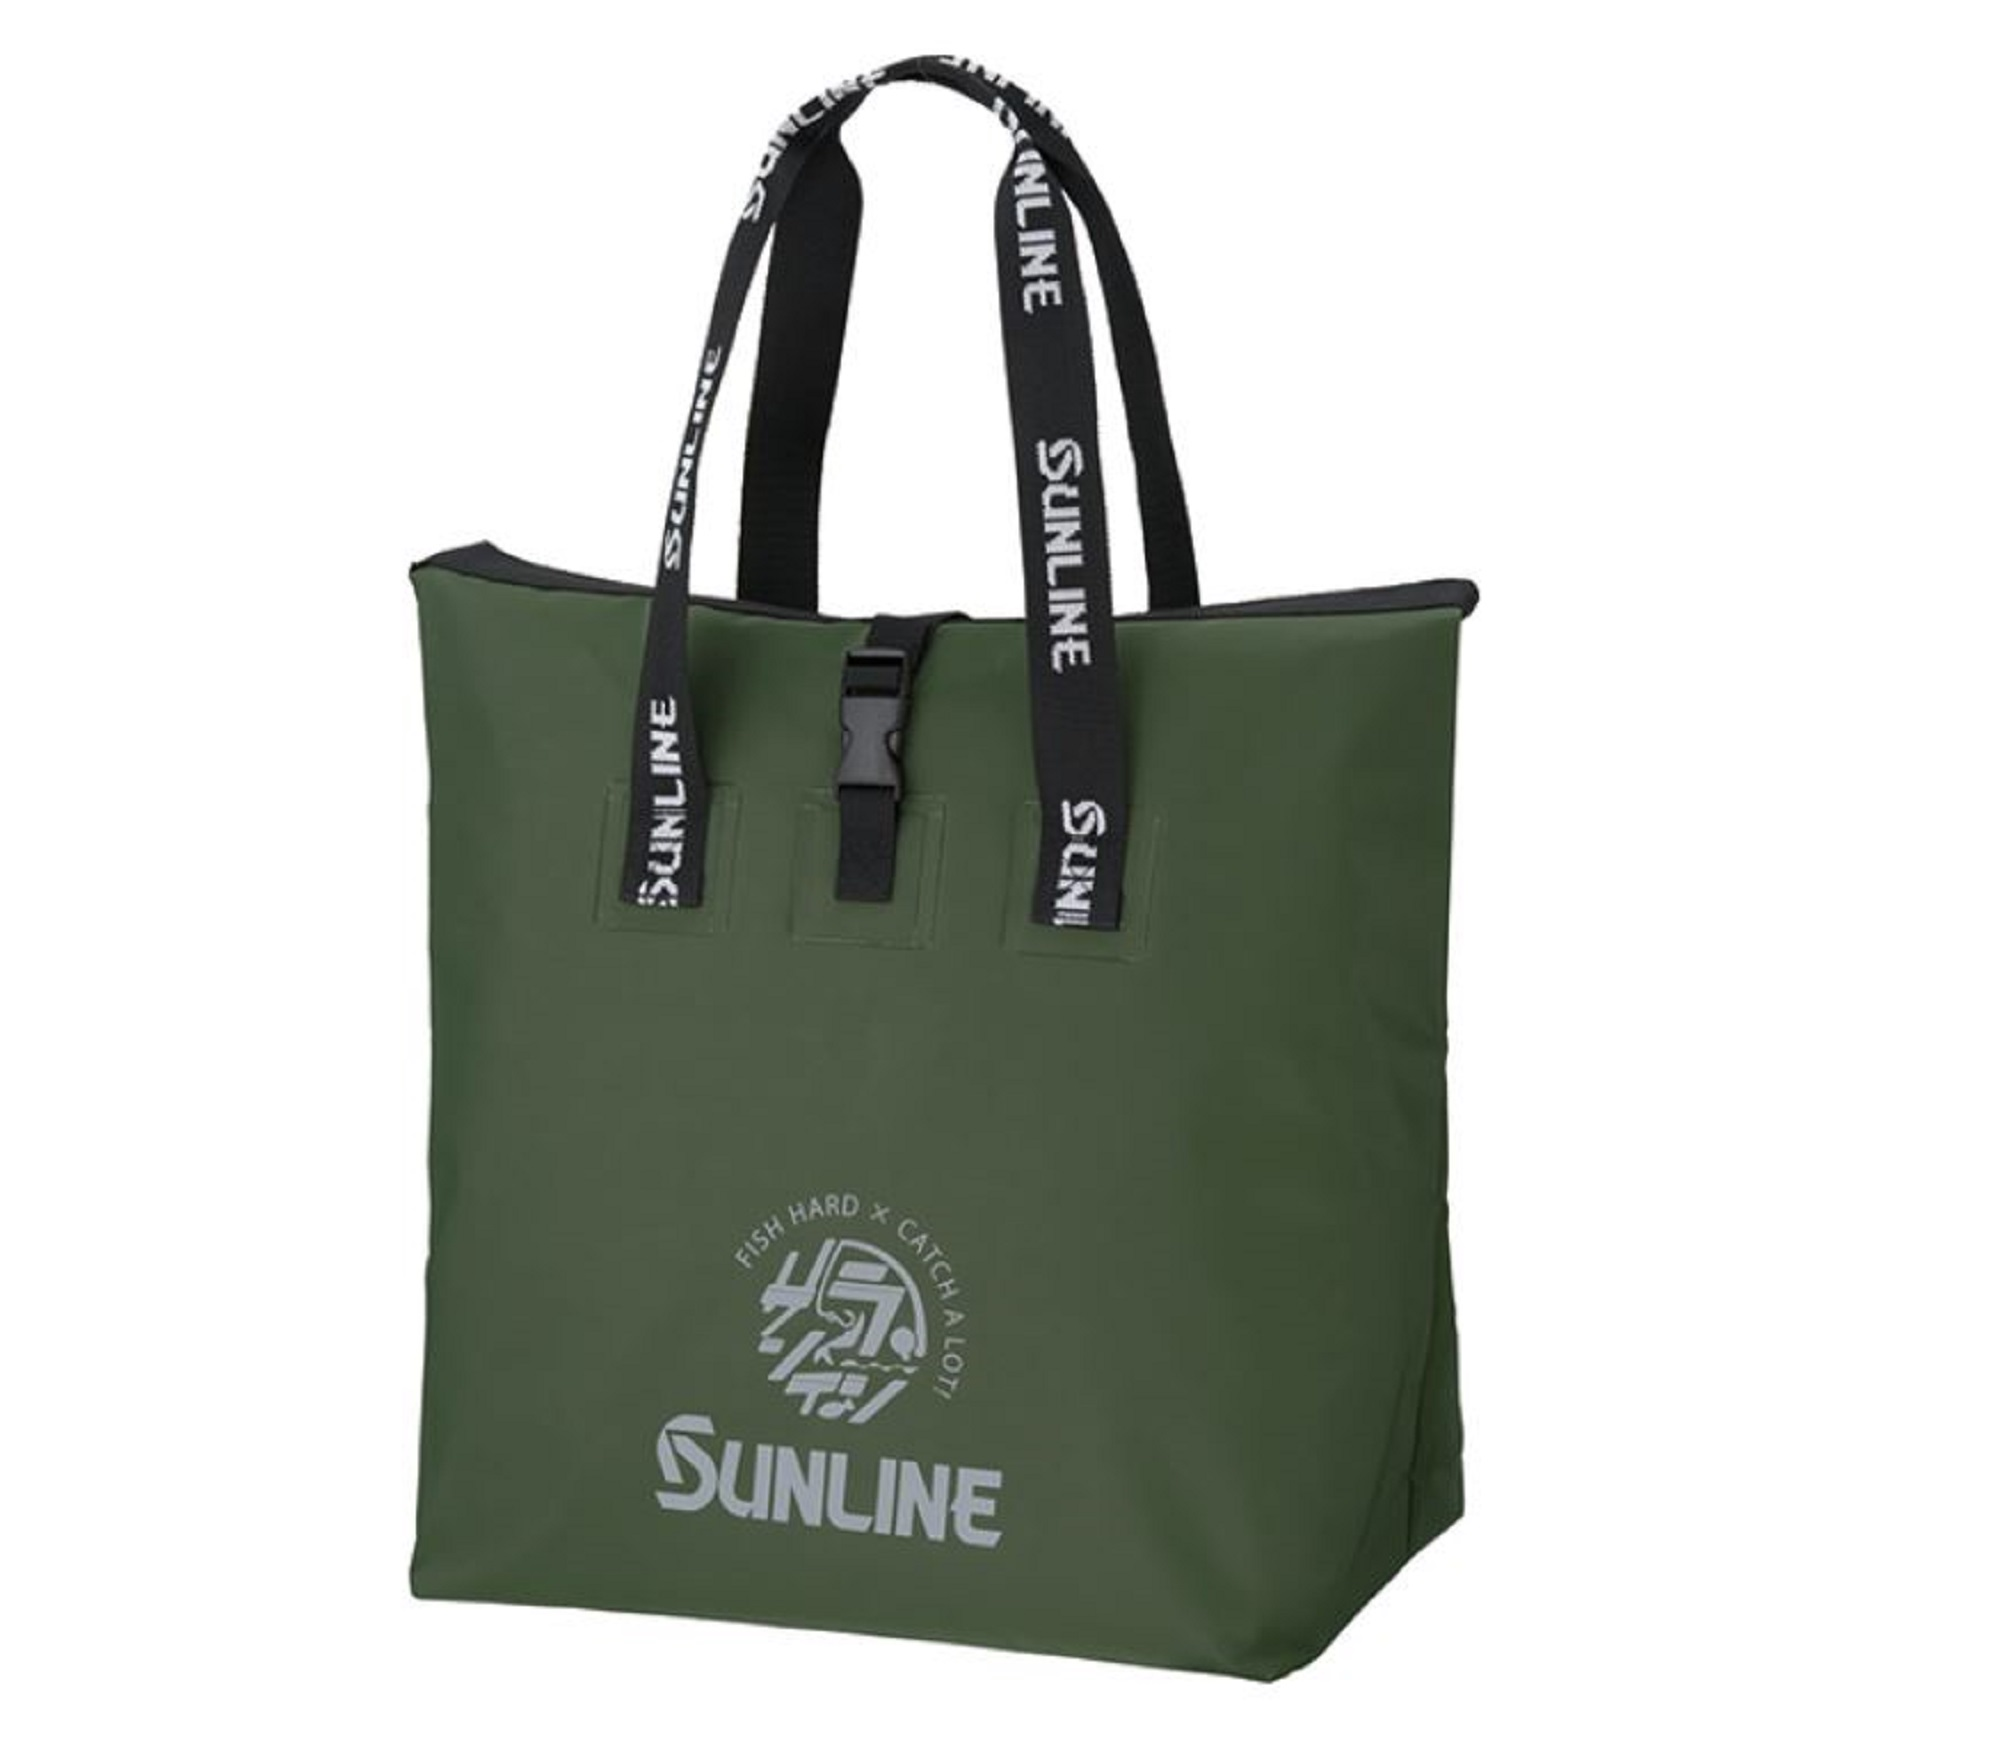 Sunline SFB-0721 Water Proof Tote Bag 480 x 500 x 250 mm Green (5013)